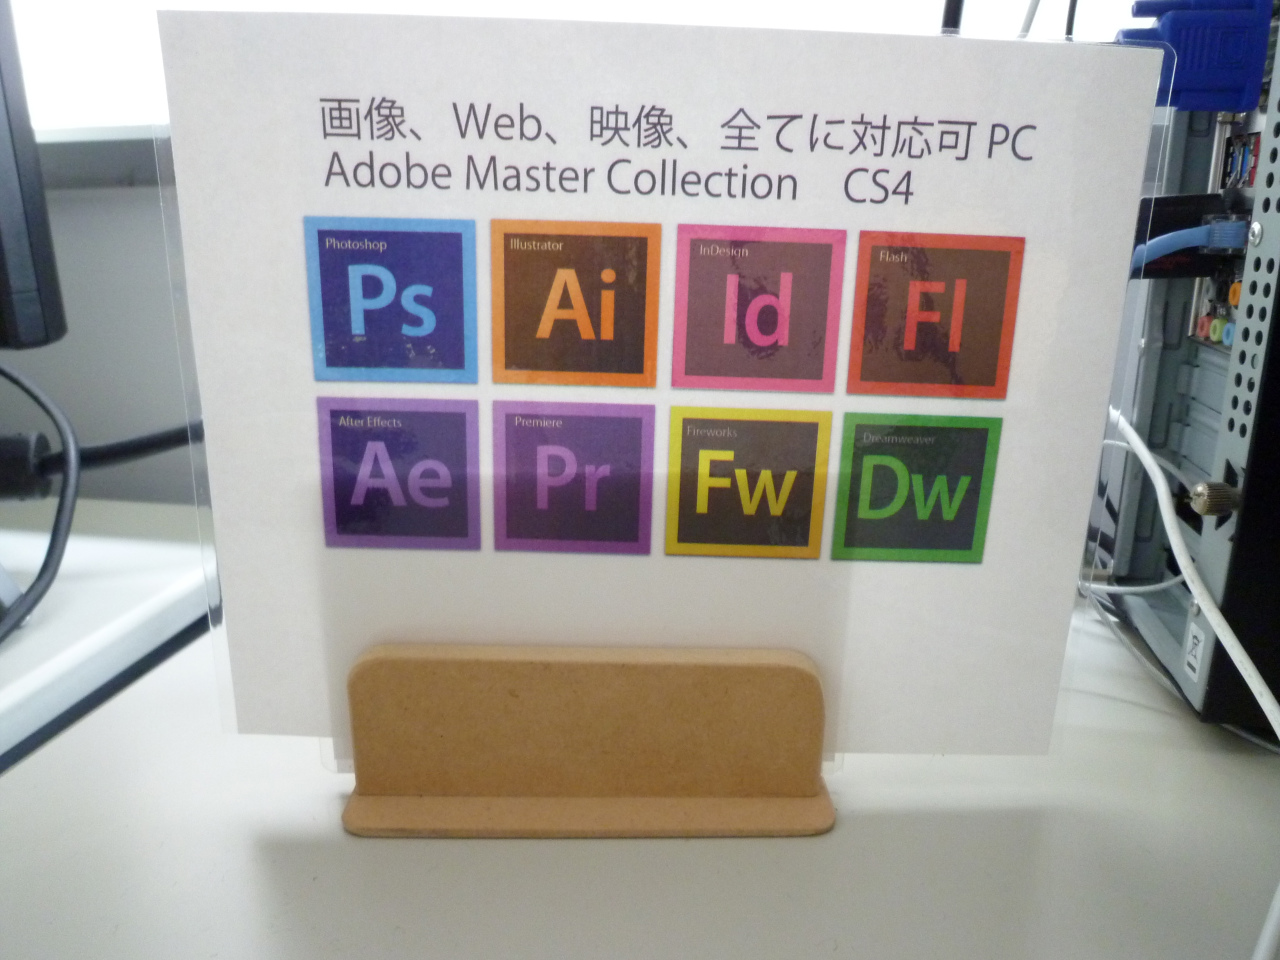 Adobe Master Collection CS4PC with Adobe Master Collection CS4